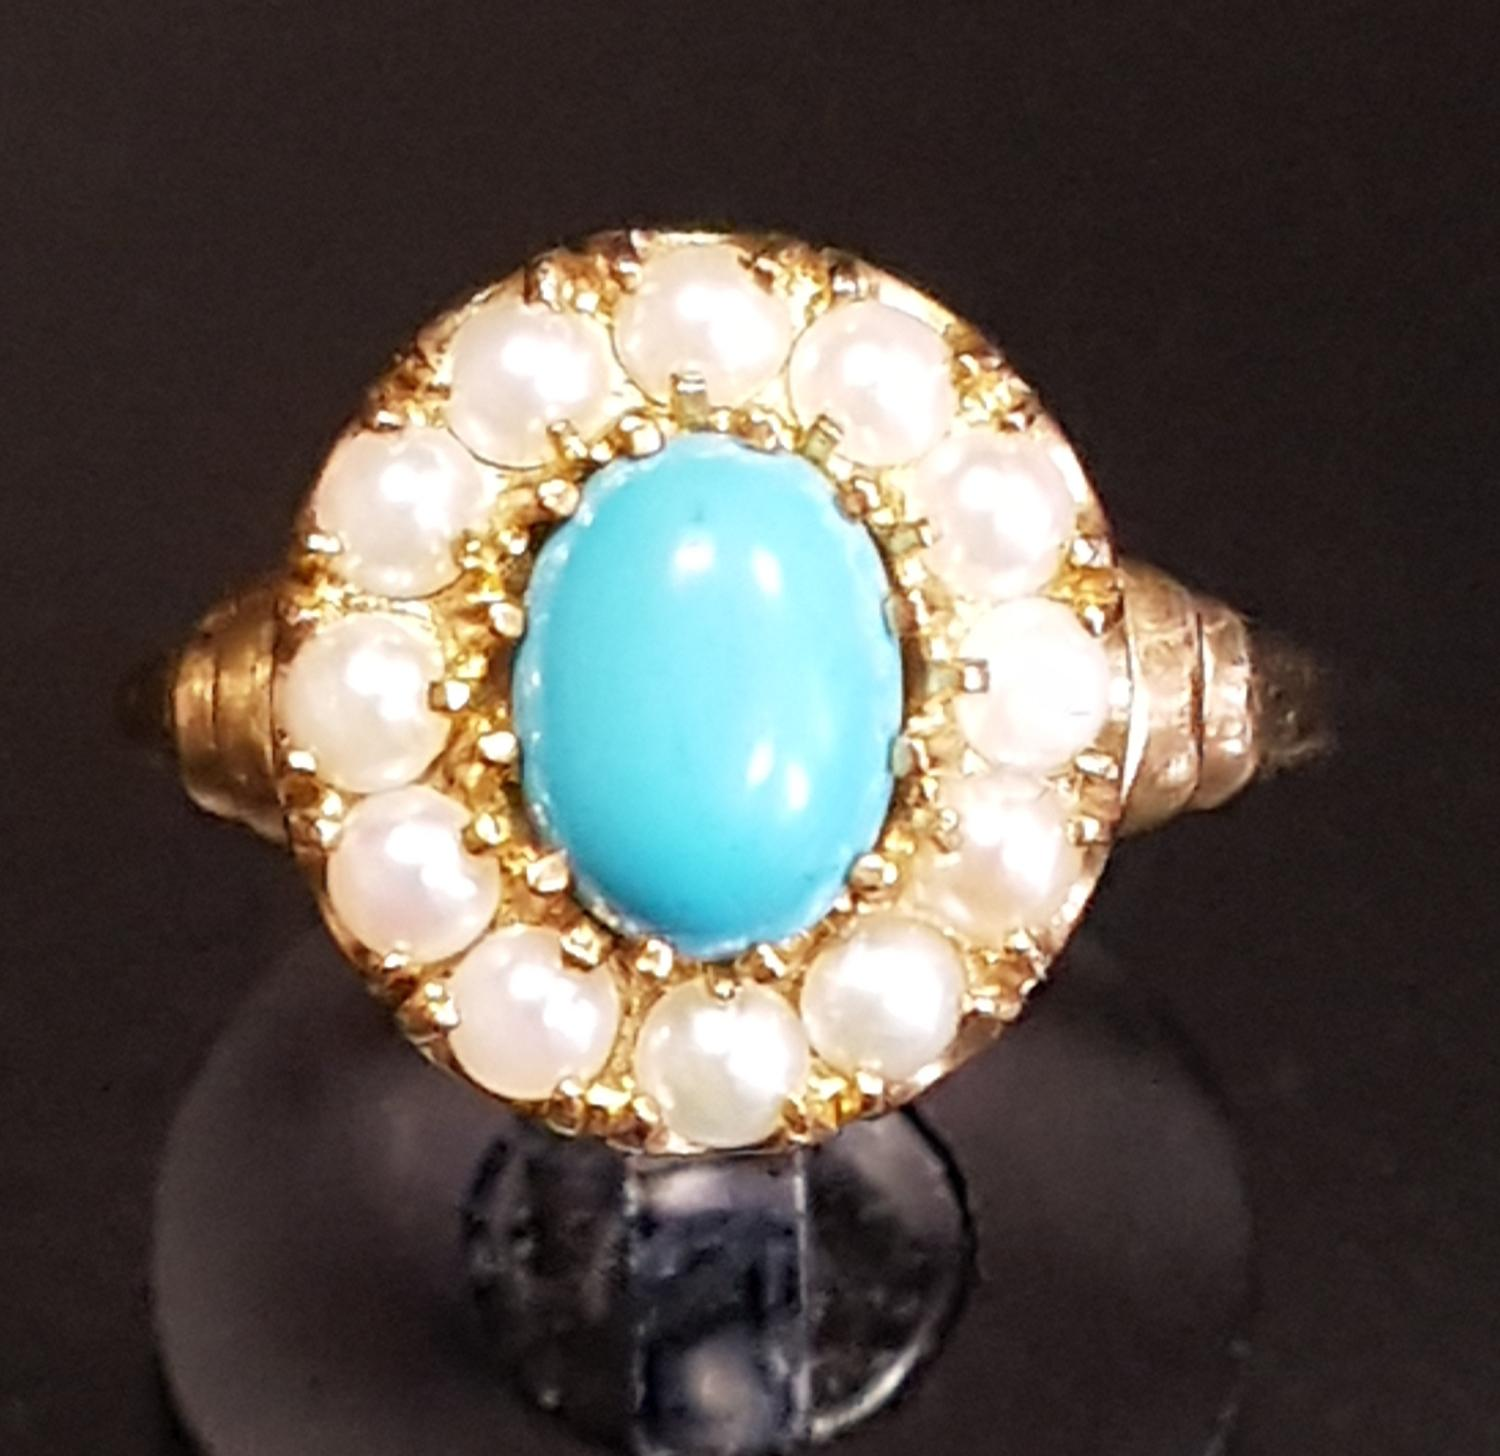 Lot 16 - TURQUOISE AND SEED PEARL CLUSTER RING the central oval cabochon turquoise stone in twelve pearl